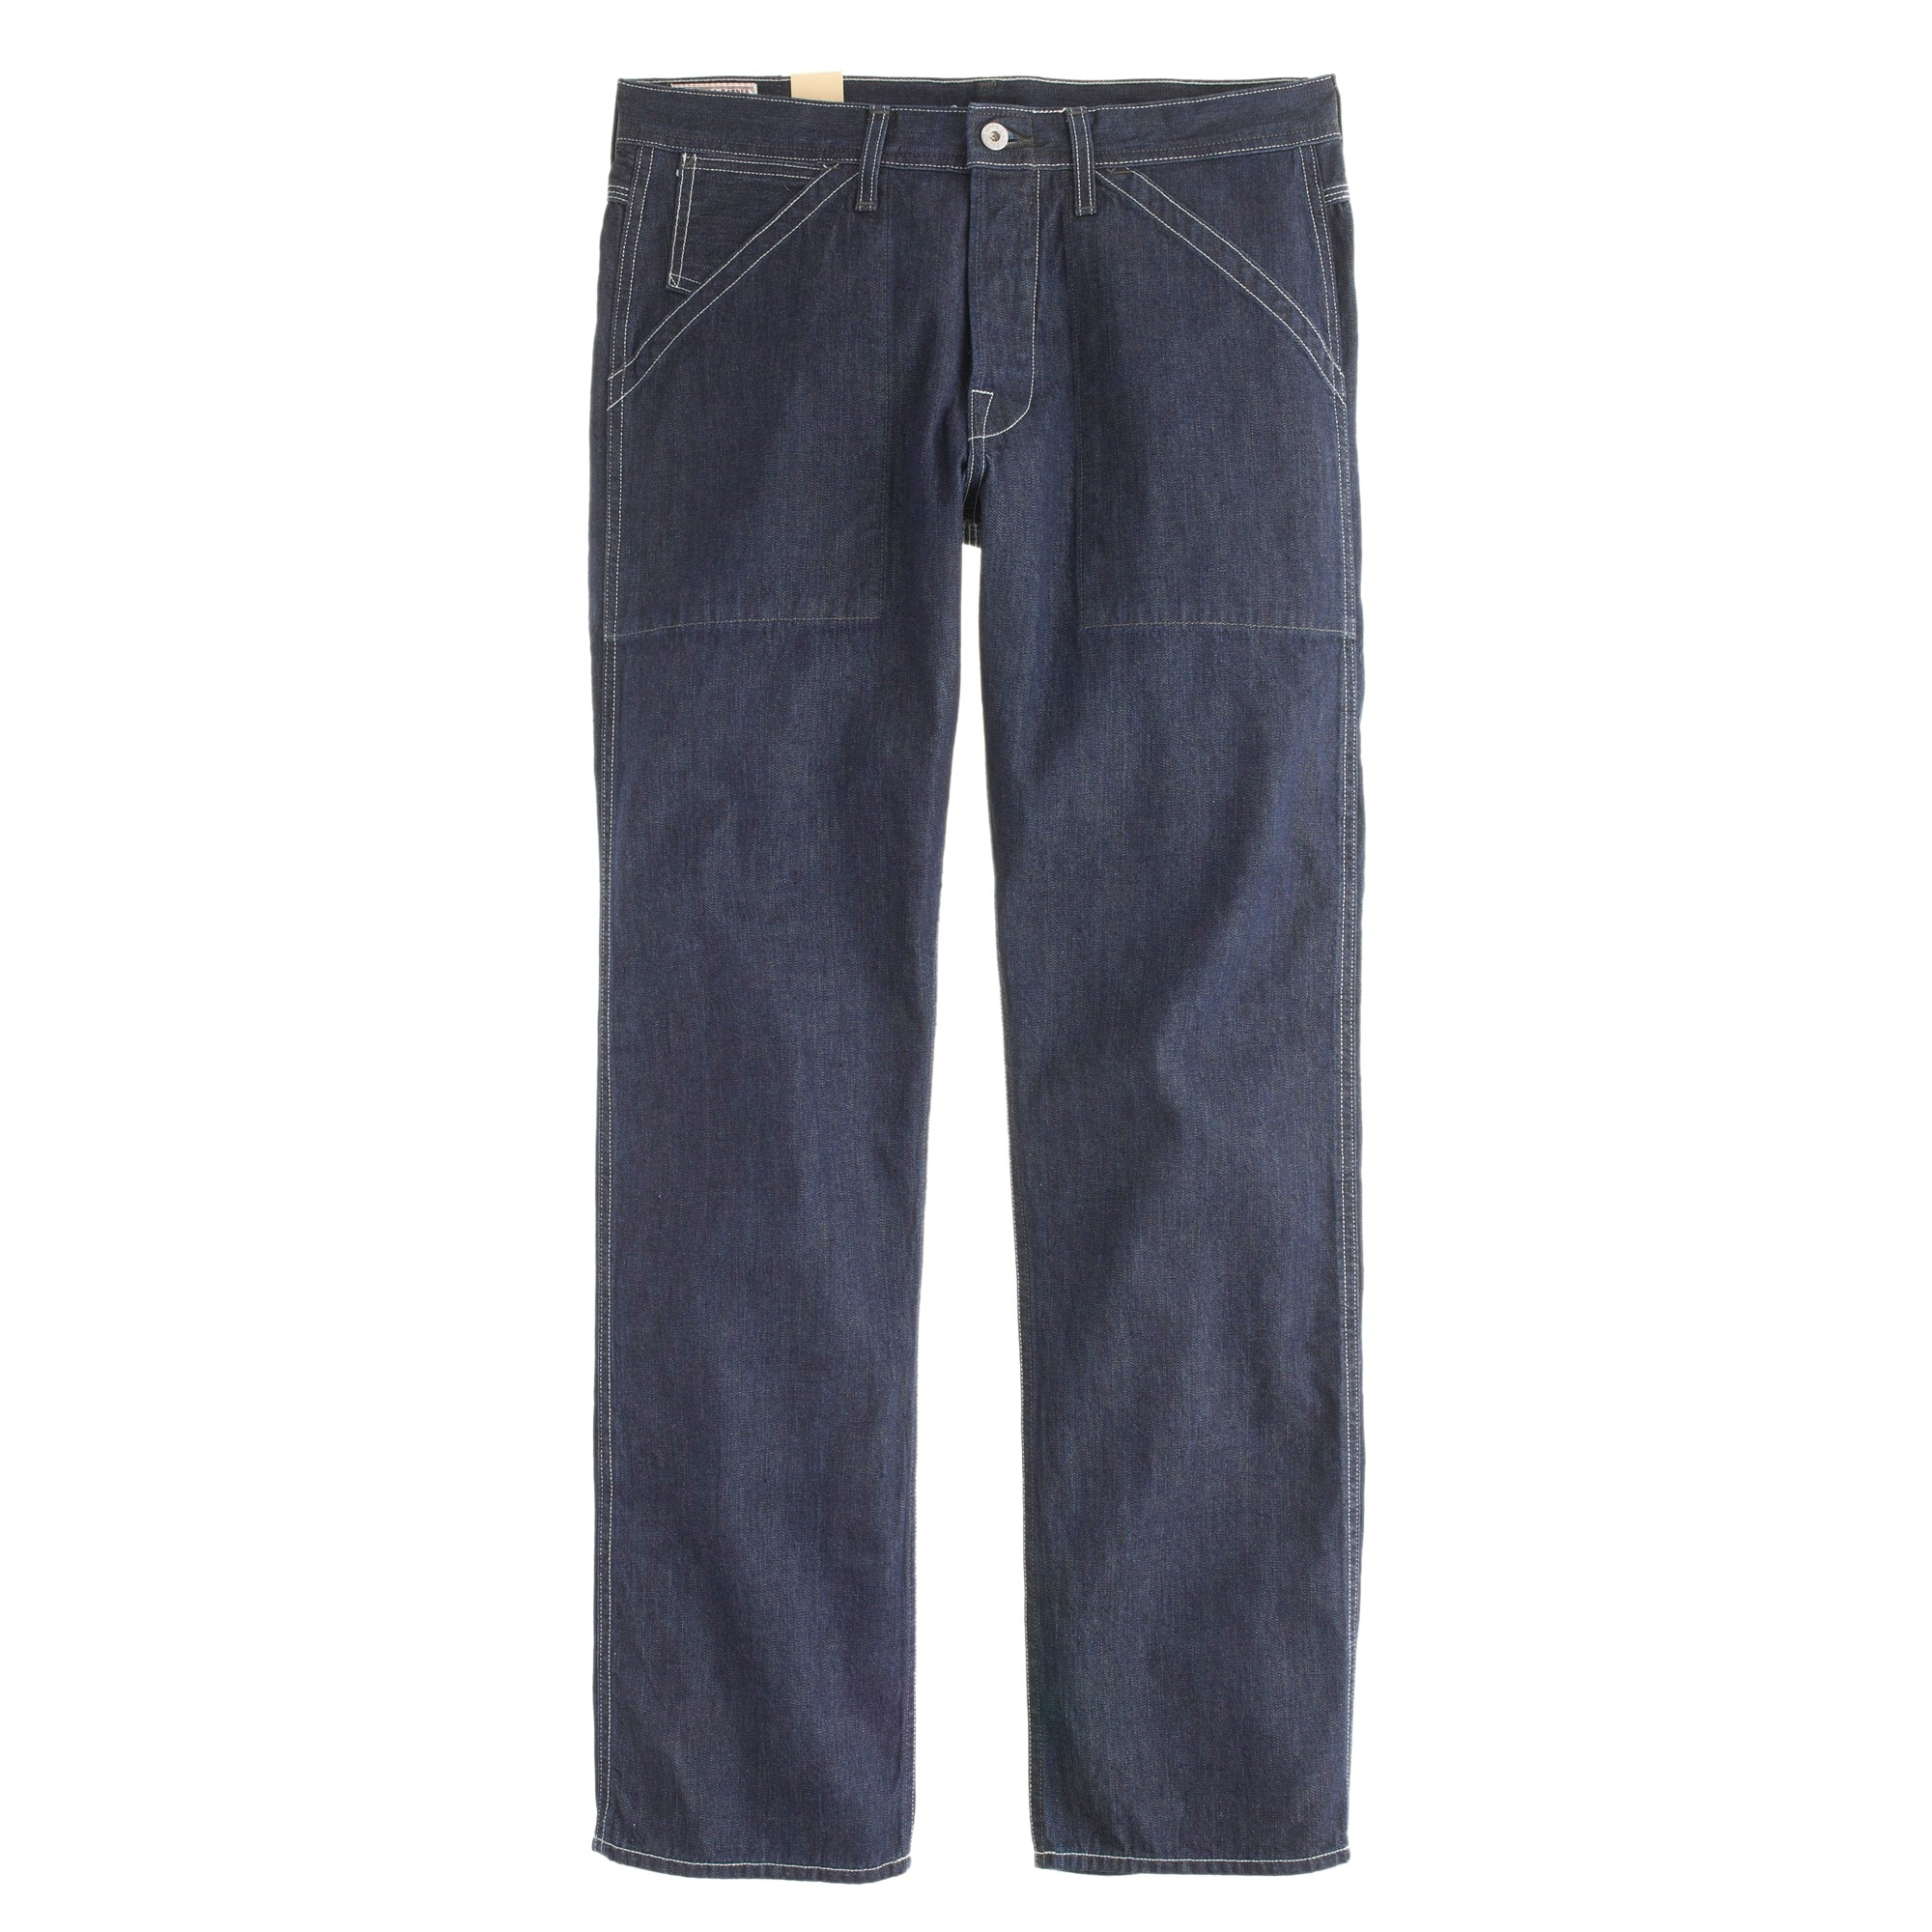 Wallace & Barnes worker pant